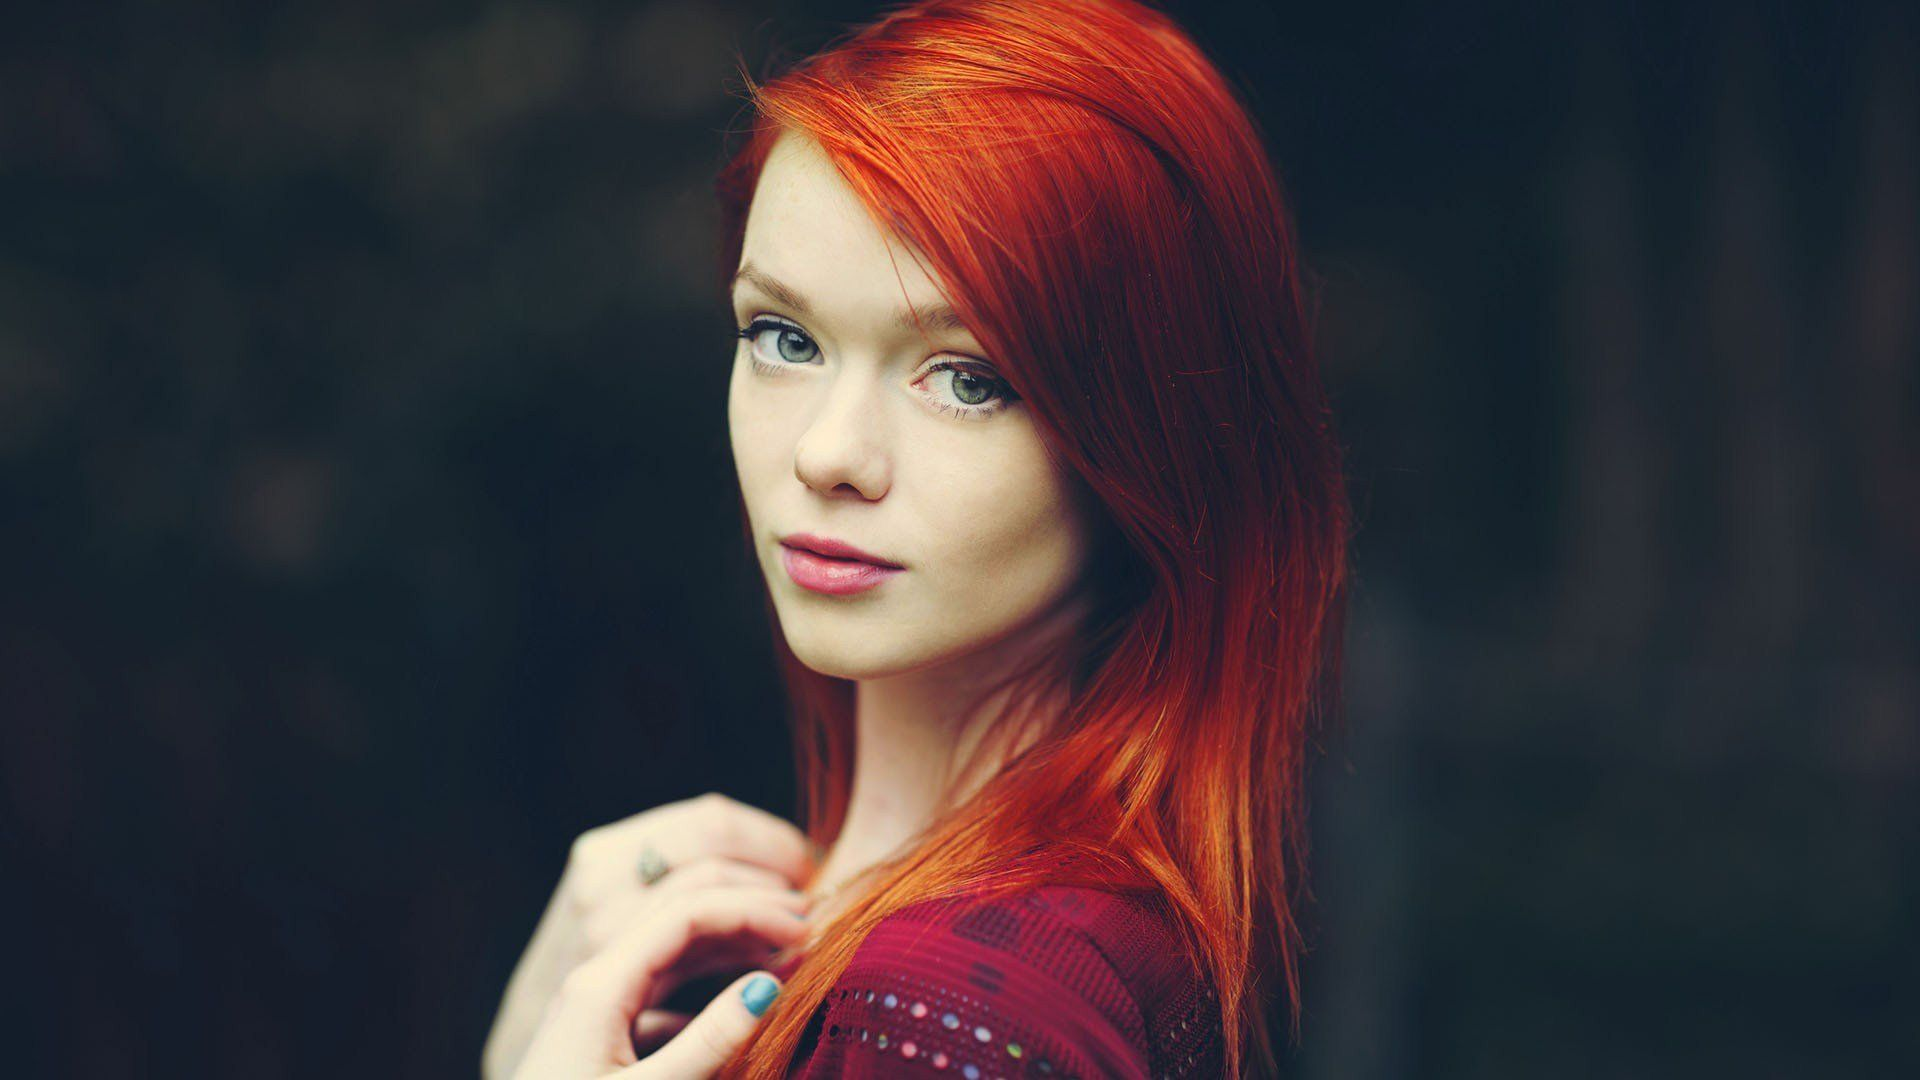 Redhead modle galleries